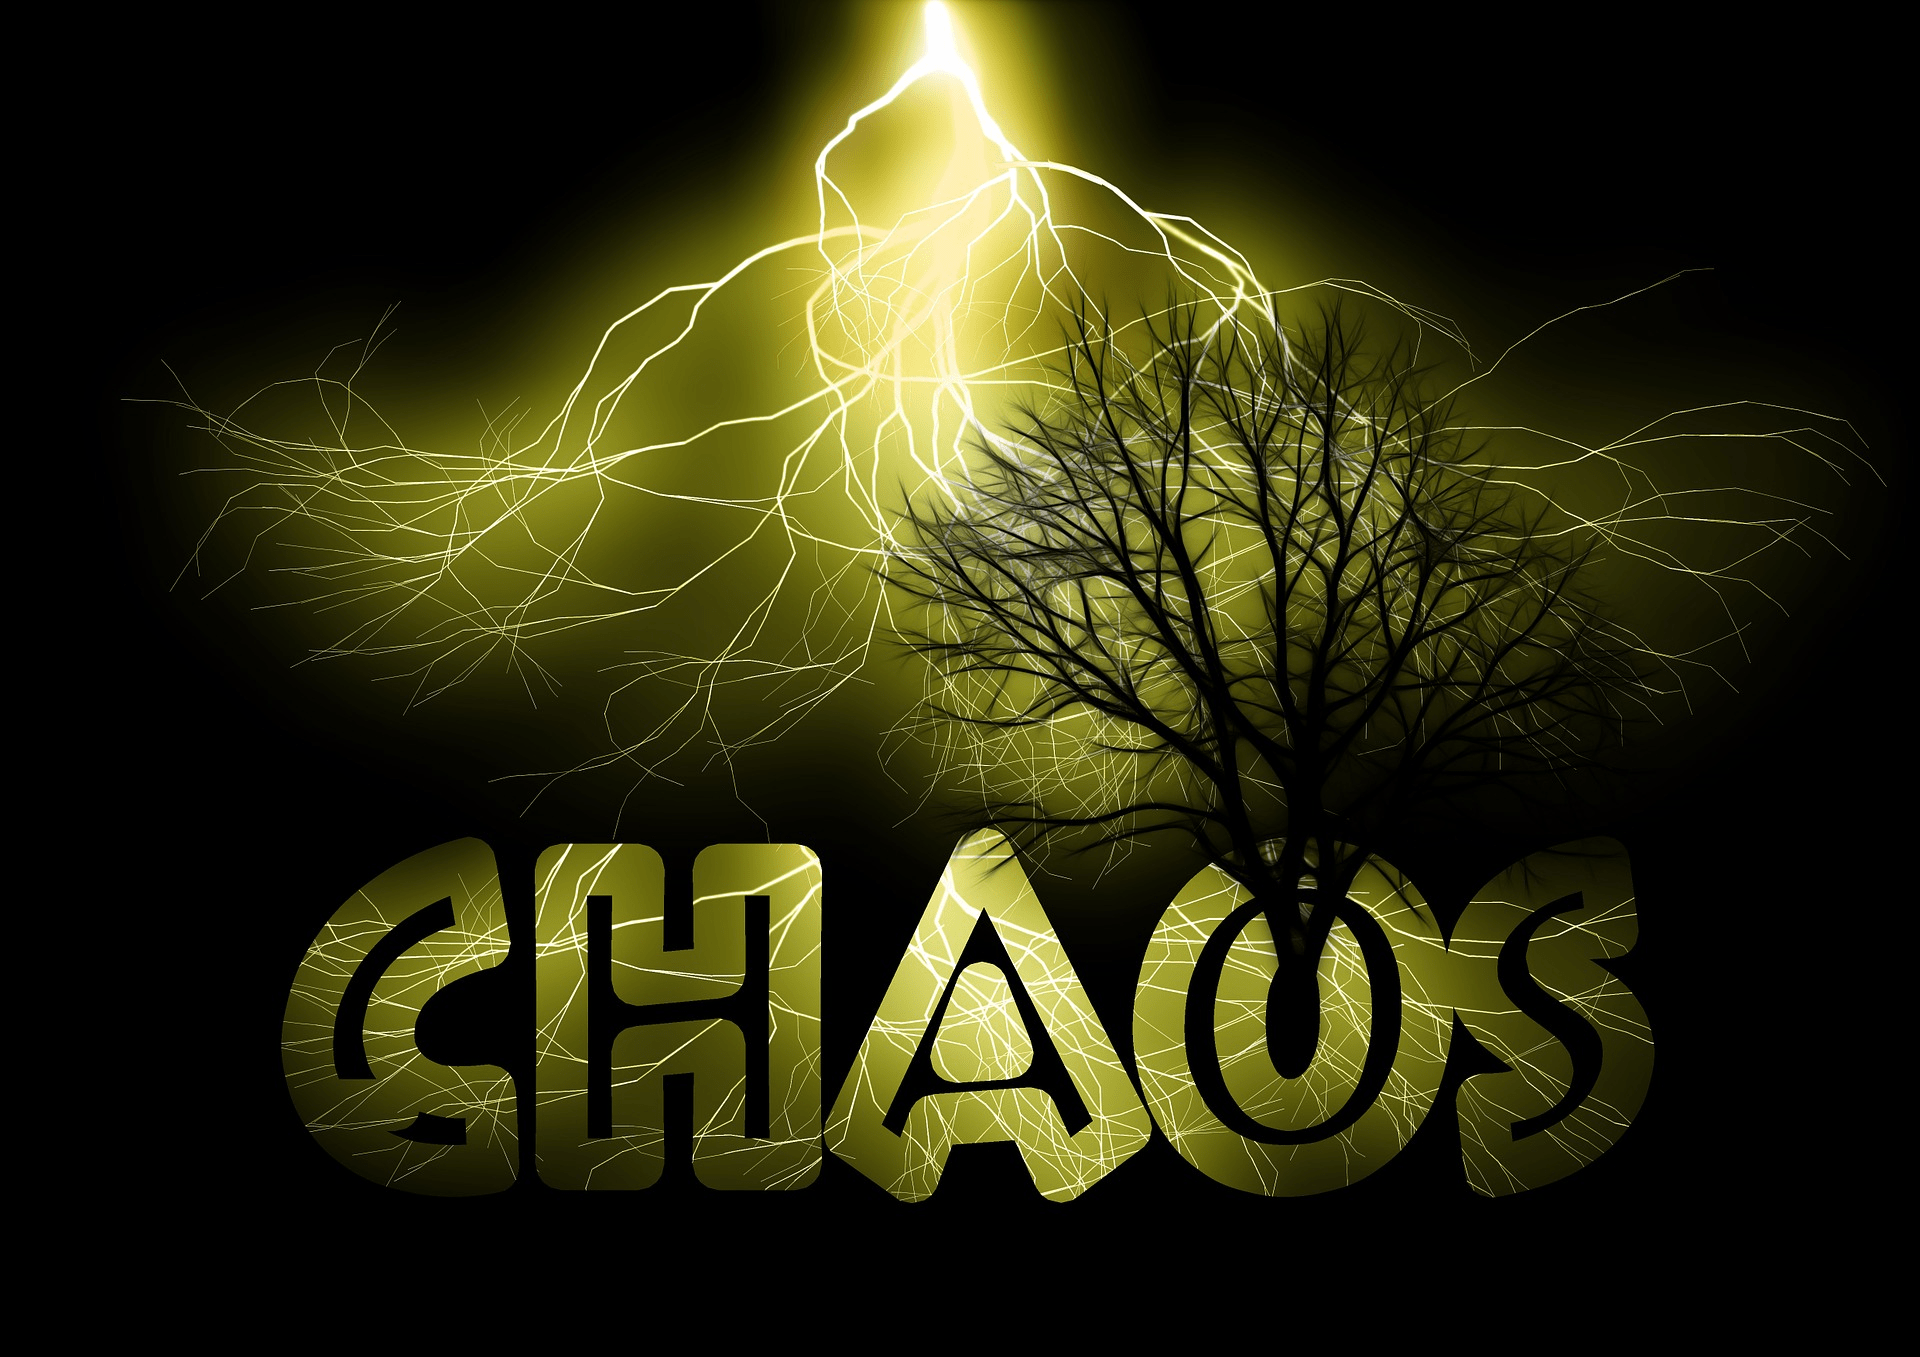 Growth out of Chaos by Geralt CC0 Public Domain Pixabay